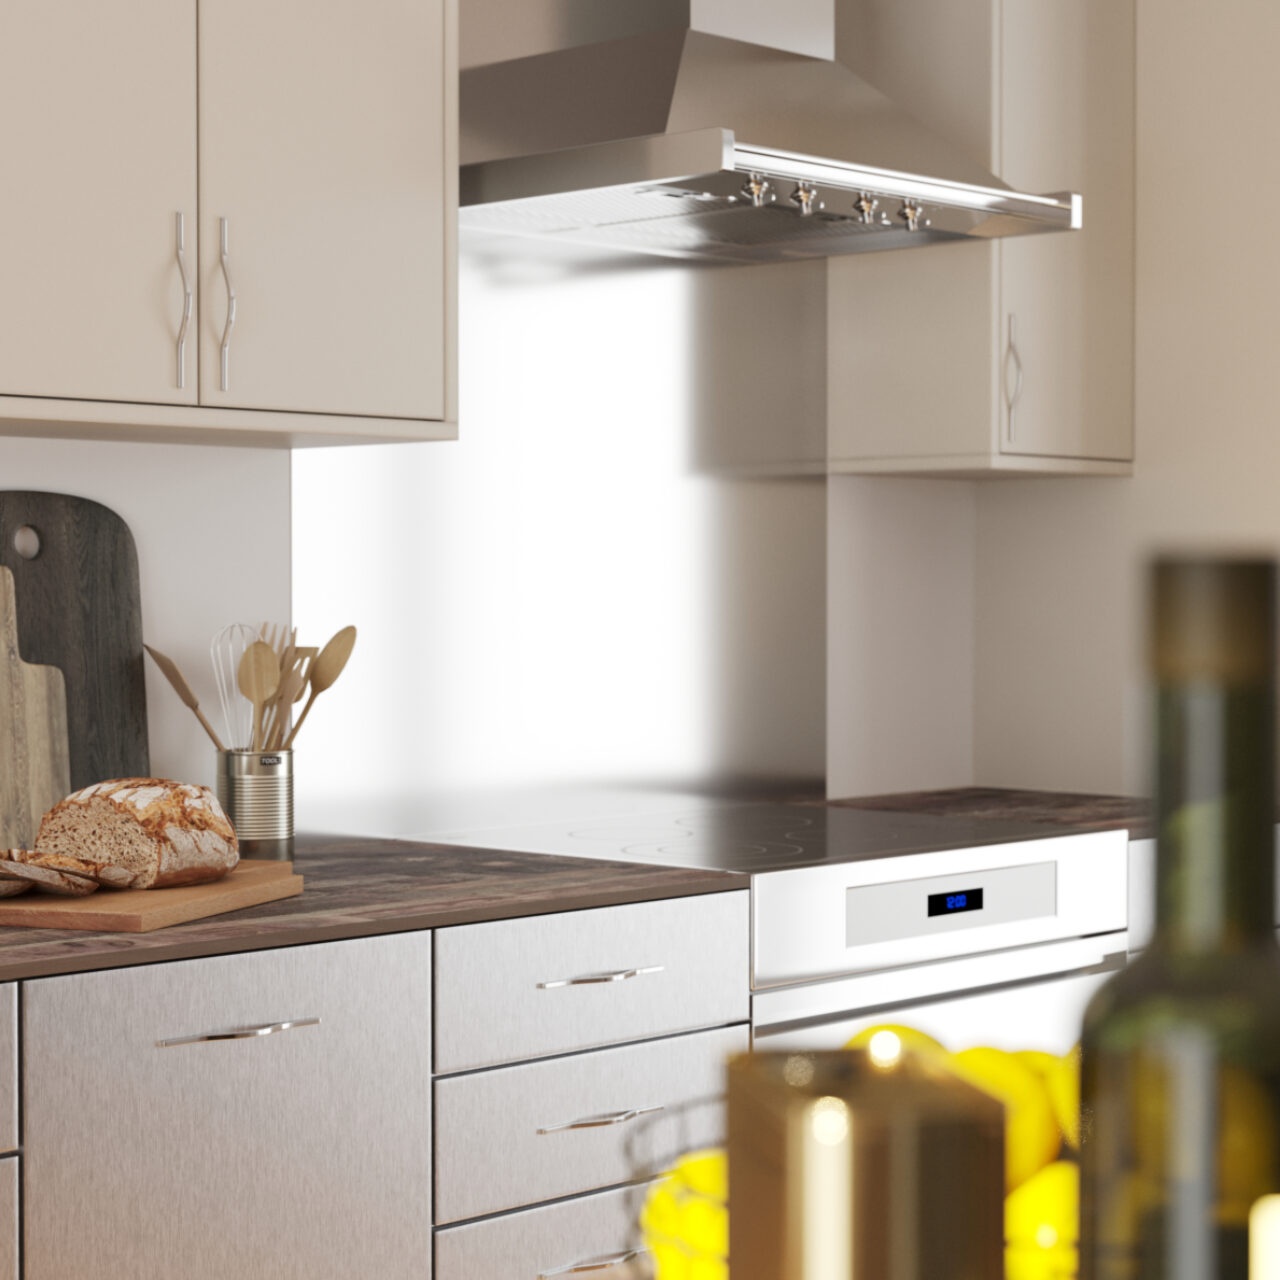 1600683079 Will inc Int Reflections kitchen 008